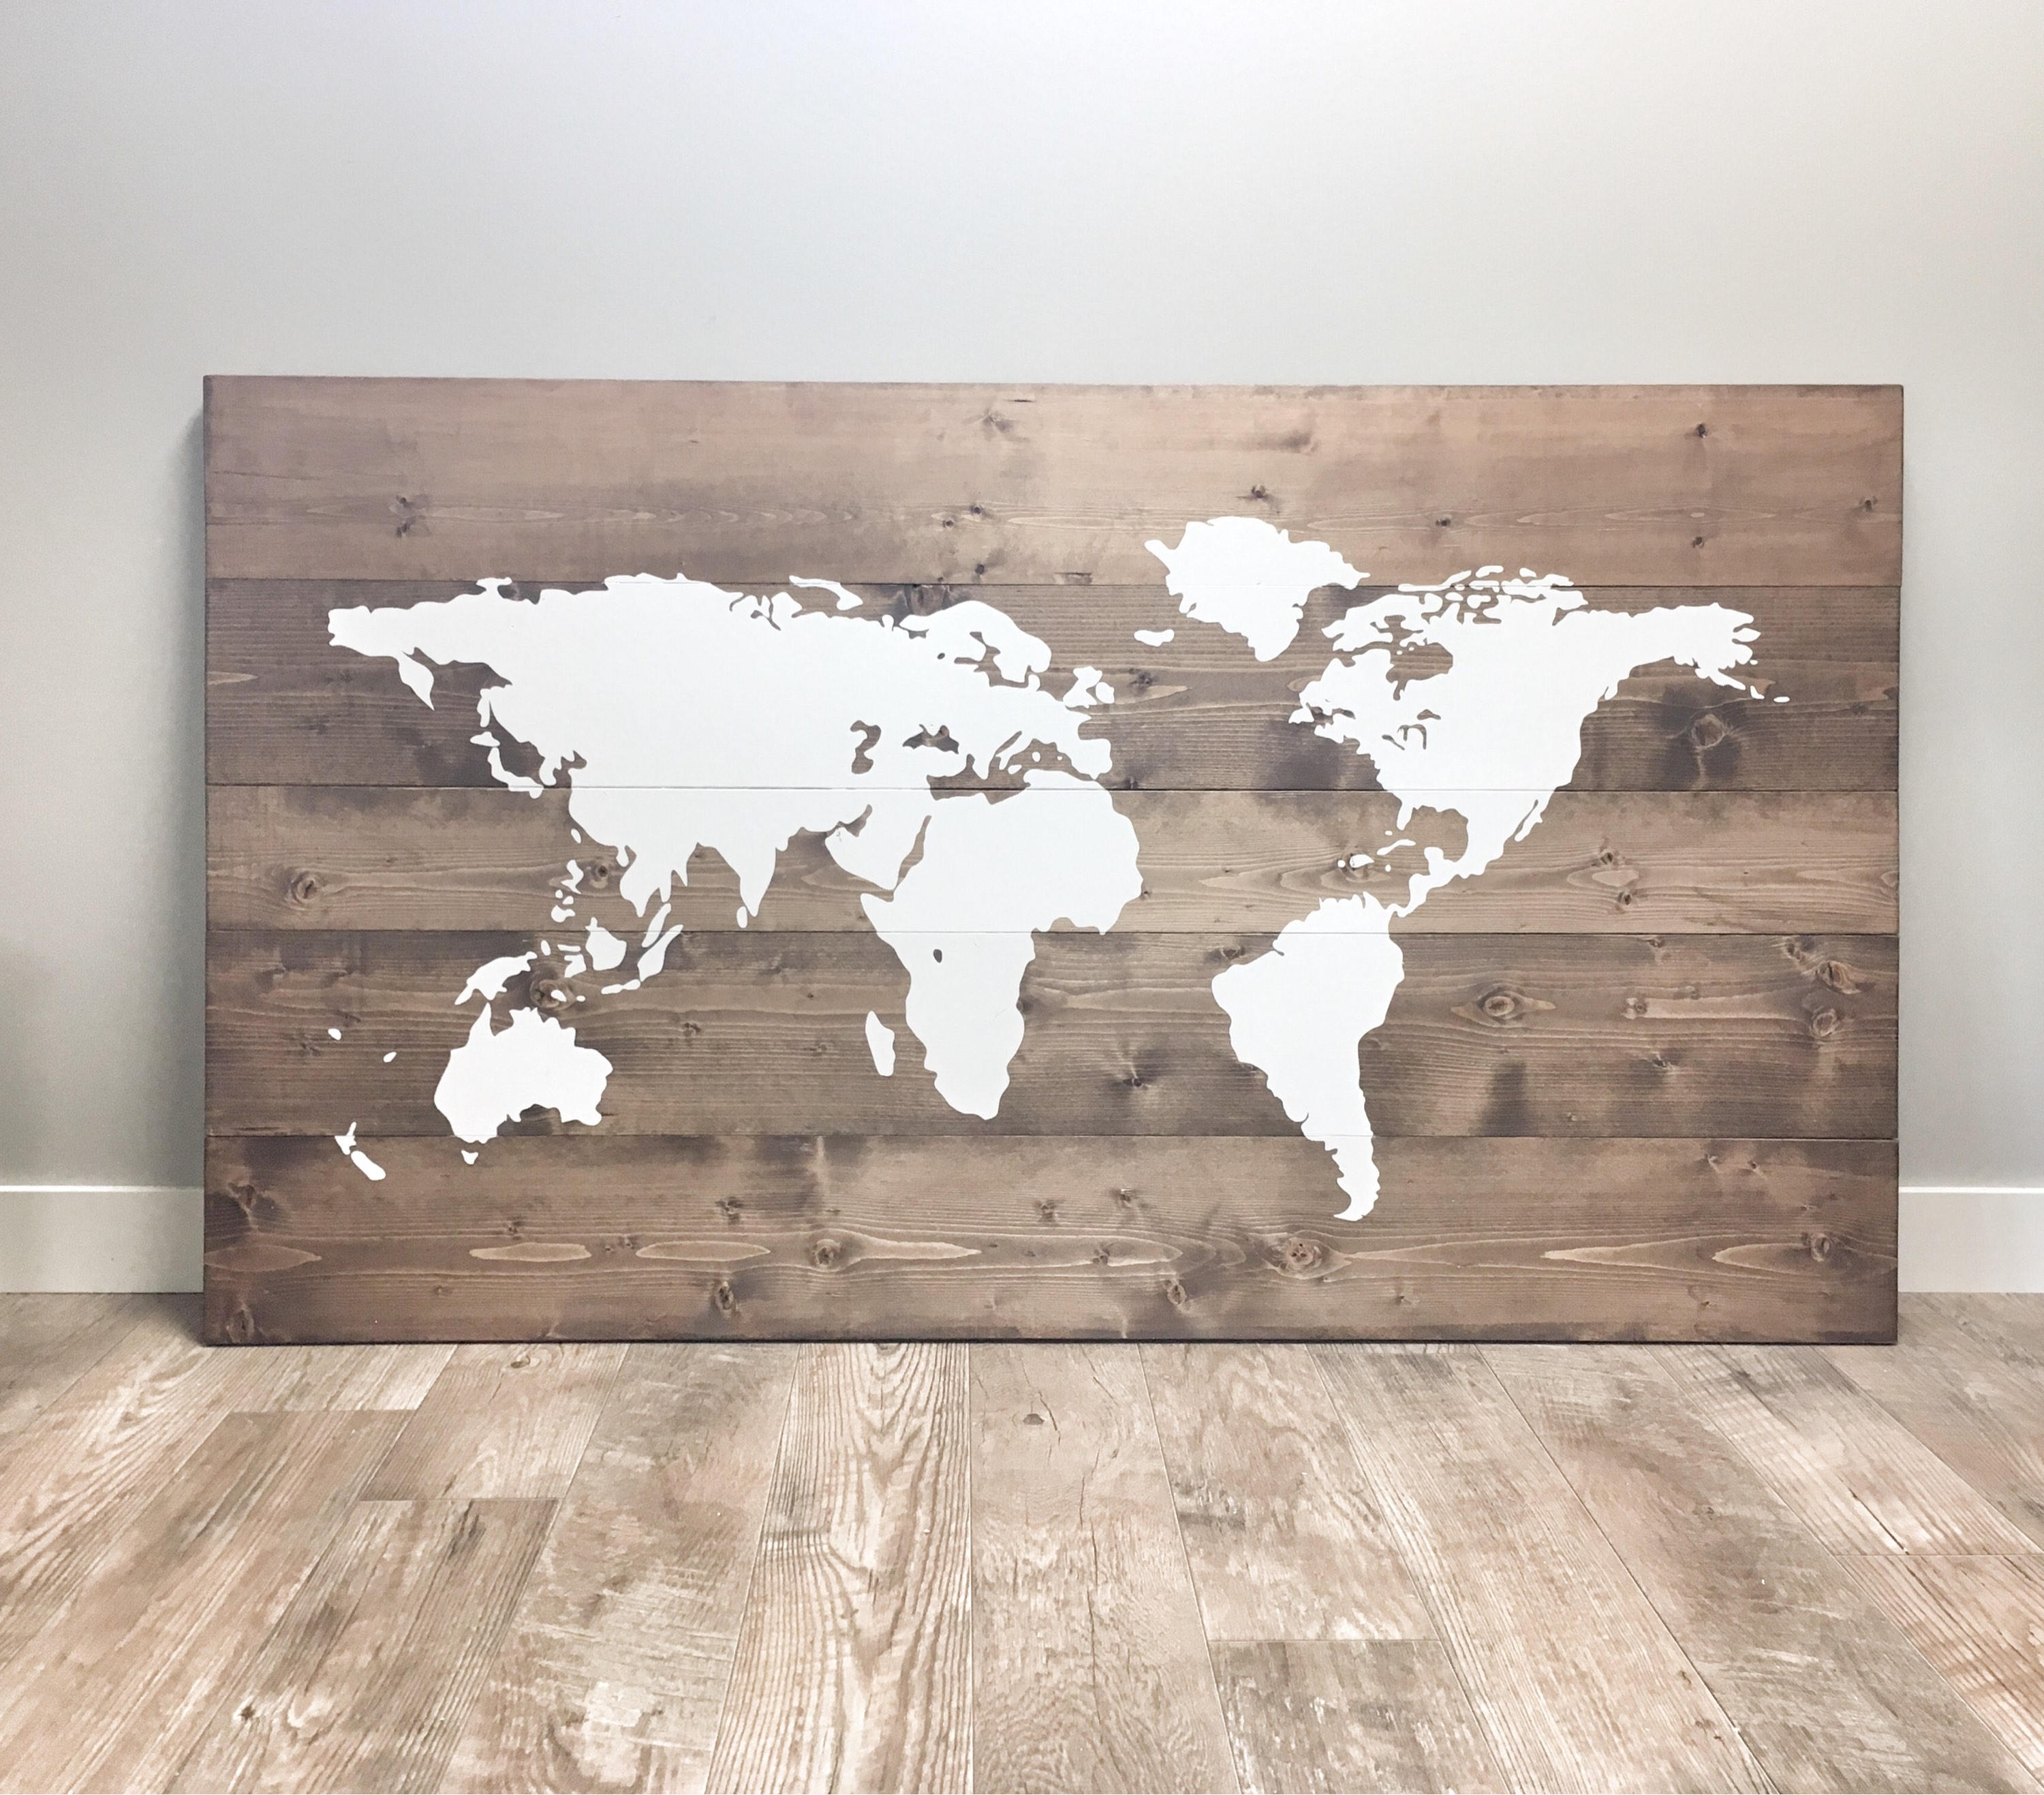 Most Recent Huge Rustic Wood World Map, Rustic Decor, Farmhouse Decor, Rustic Inside Wooden World Map Wall Art (View 15 of 15)